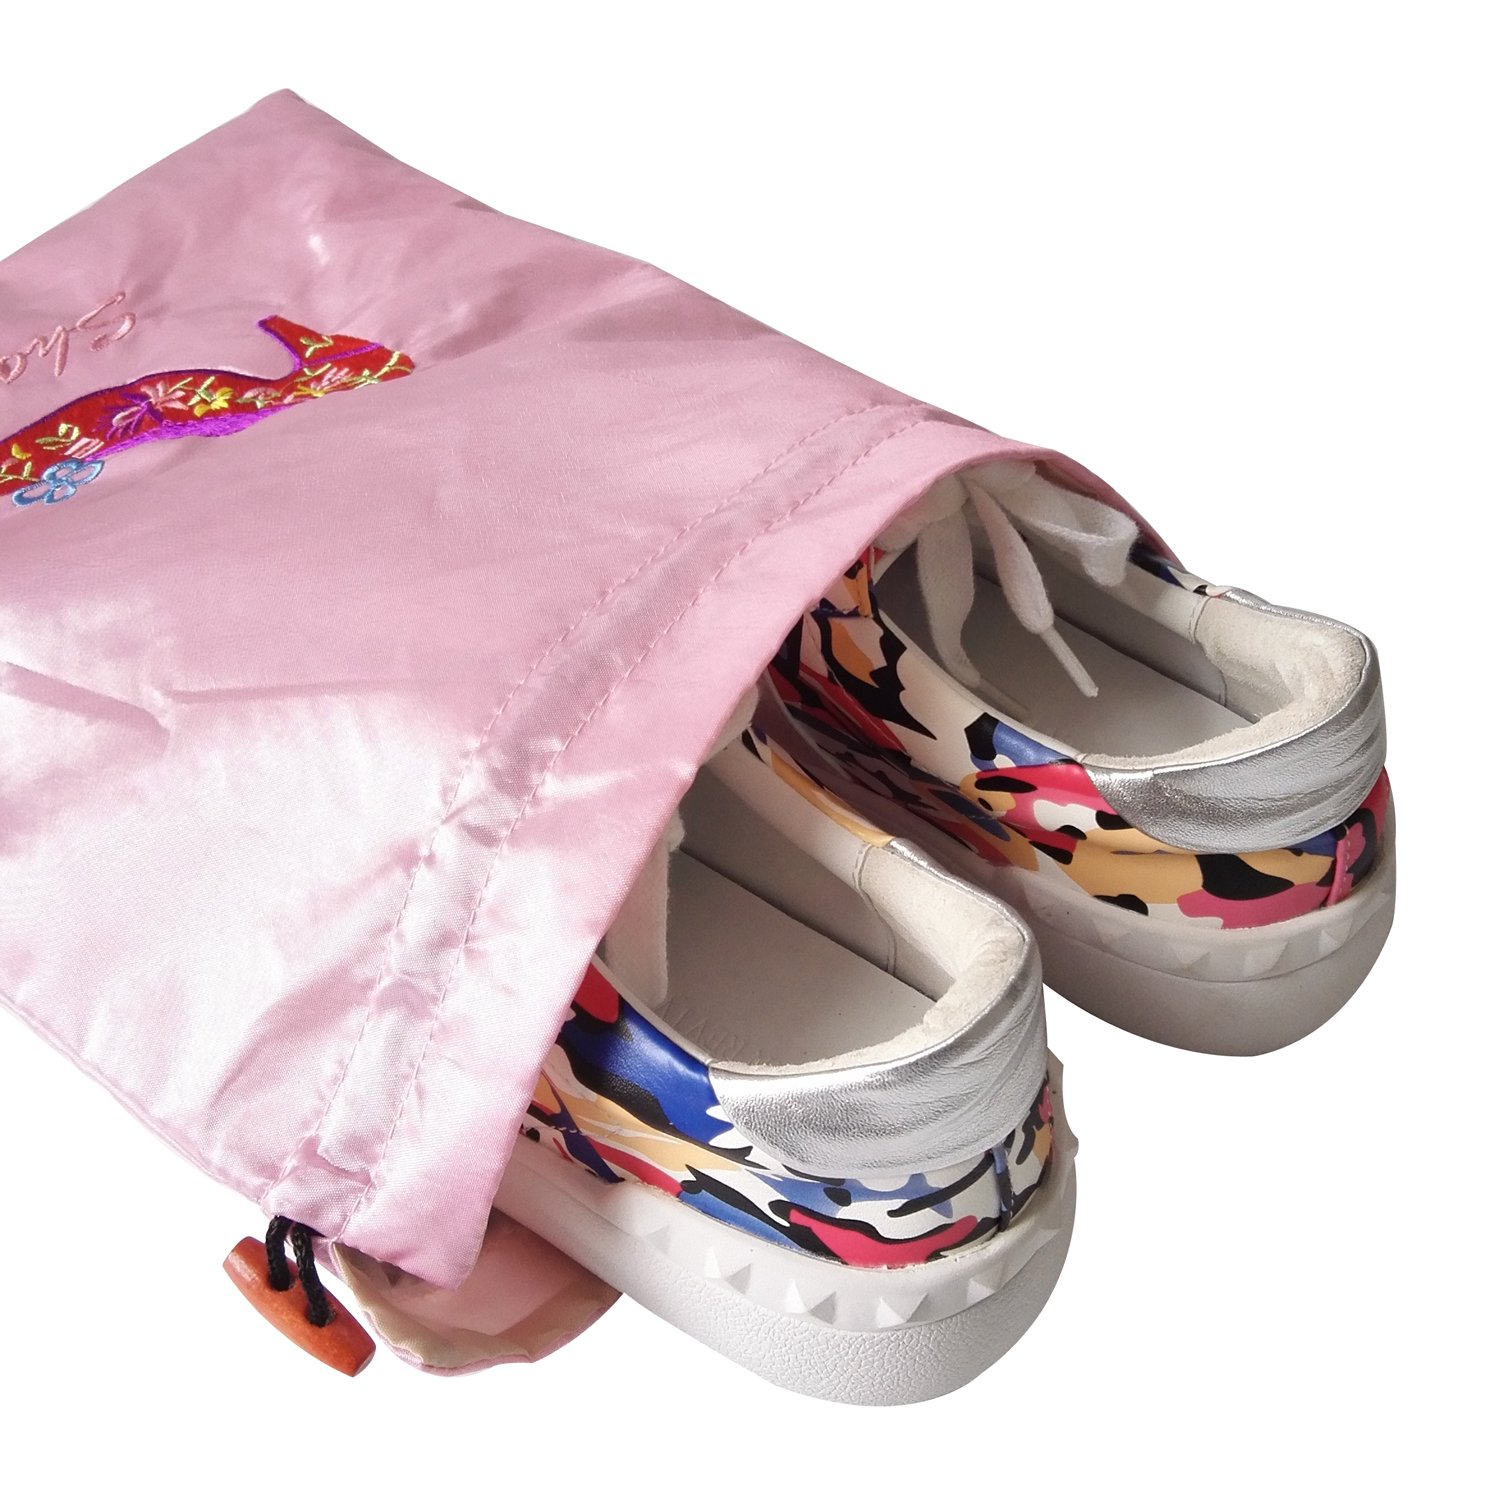 Gold Fortune 3 Packs 10.5'' x 14'' (L x W) Embroidered Silk Jacquard Travel Lingerie and Shoes Bags with Drawstring Closure (Pink) by Gold Fortune (Image #2)